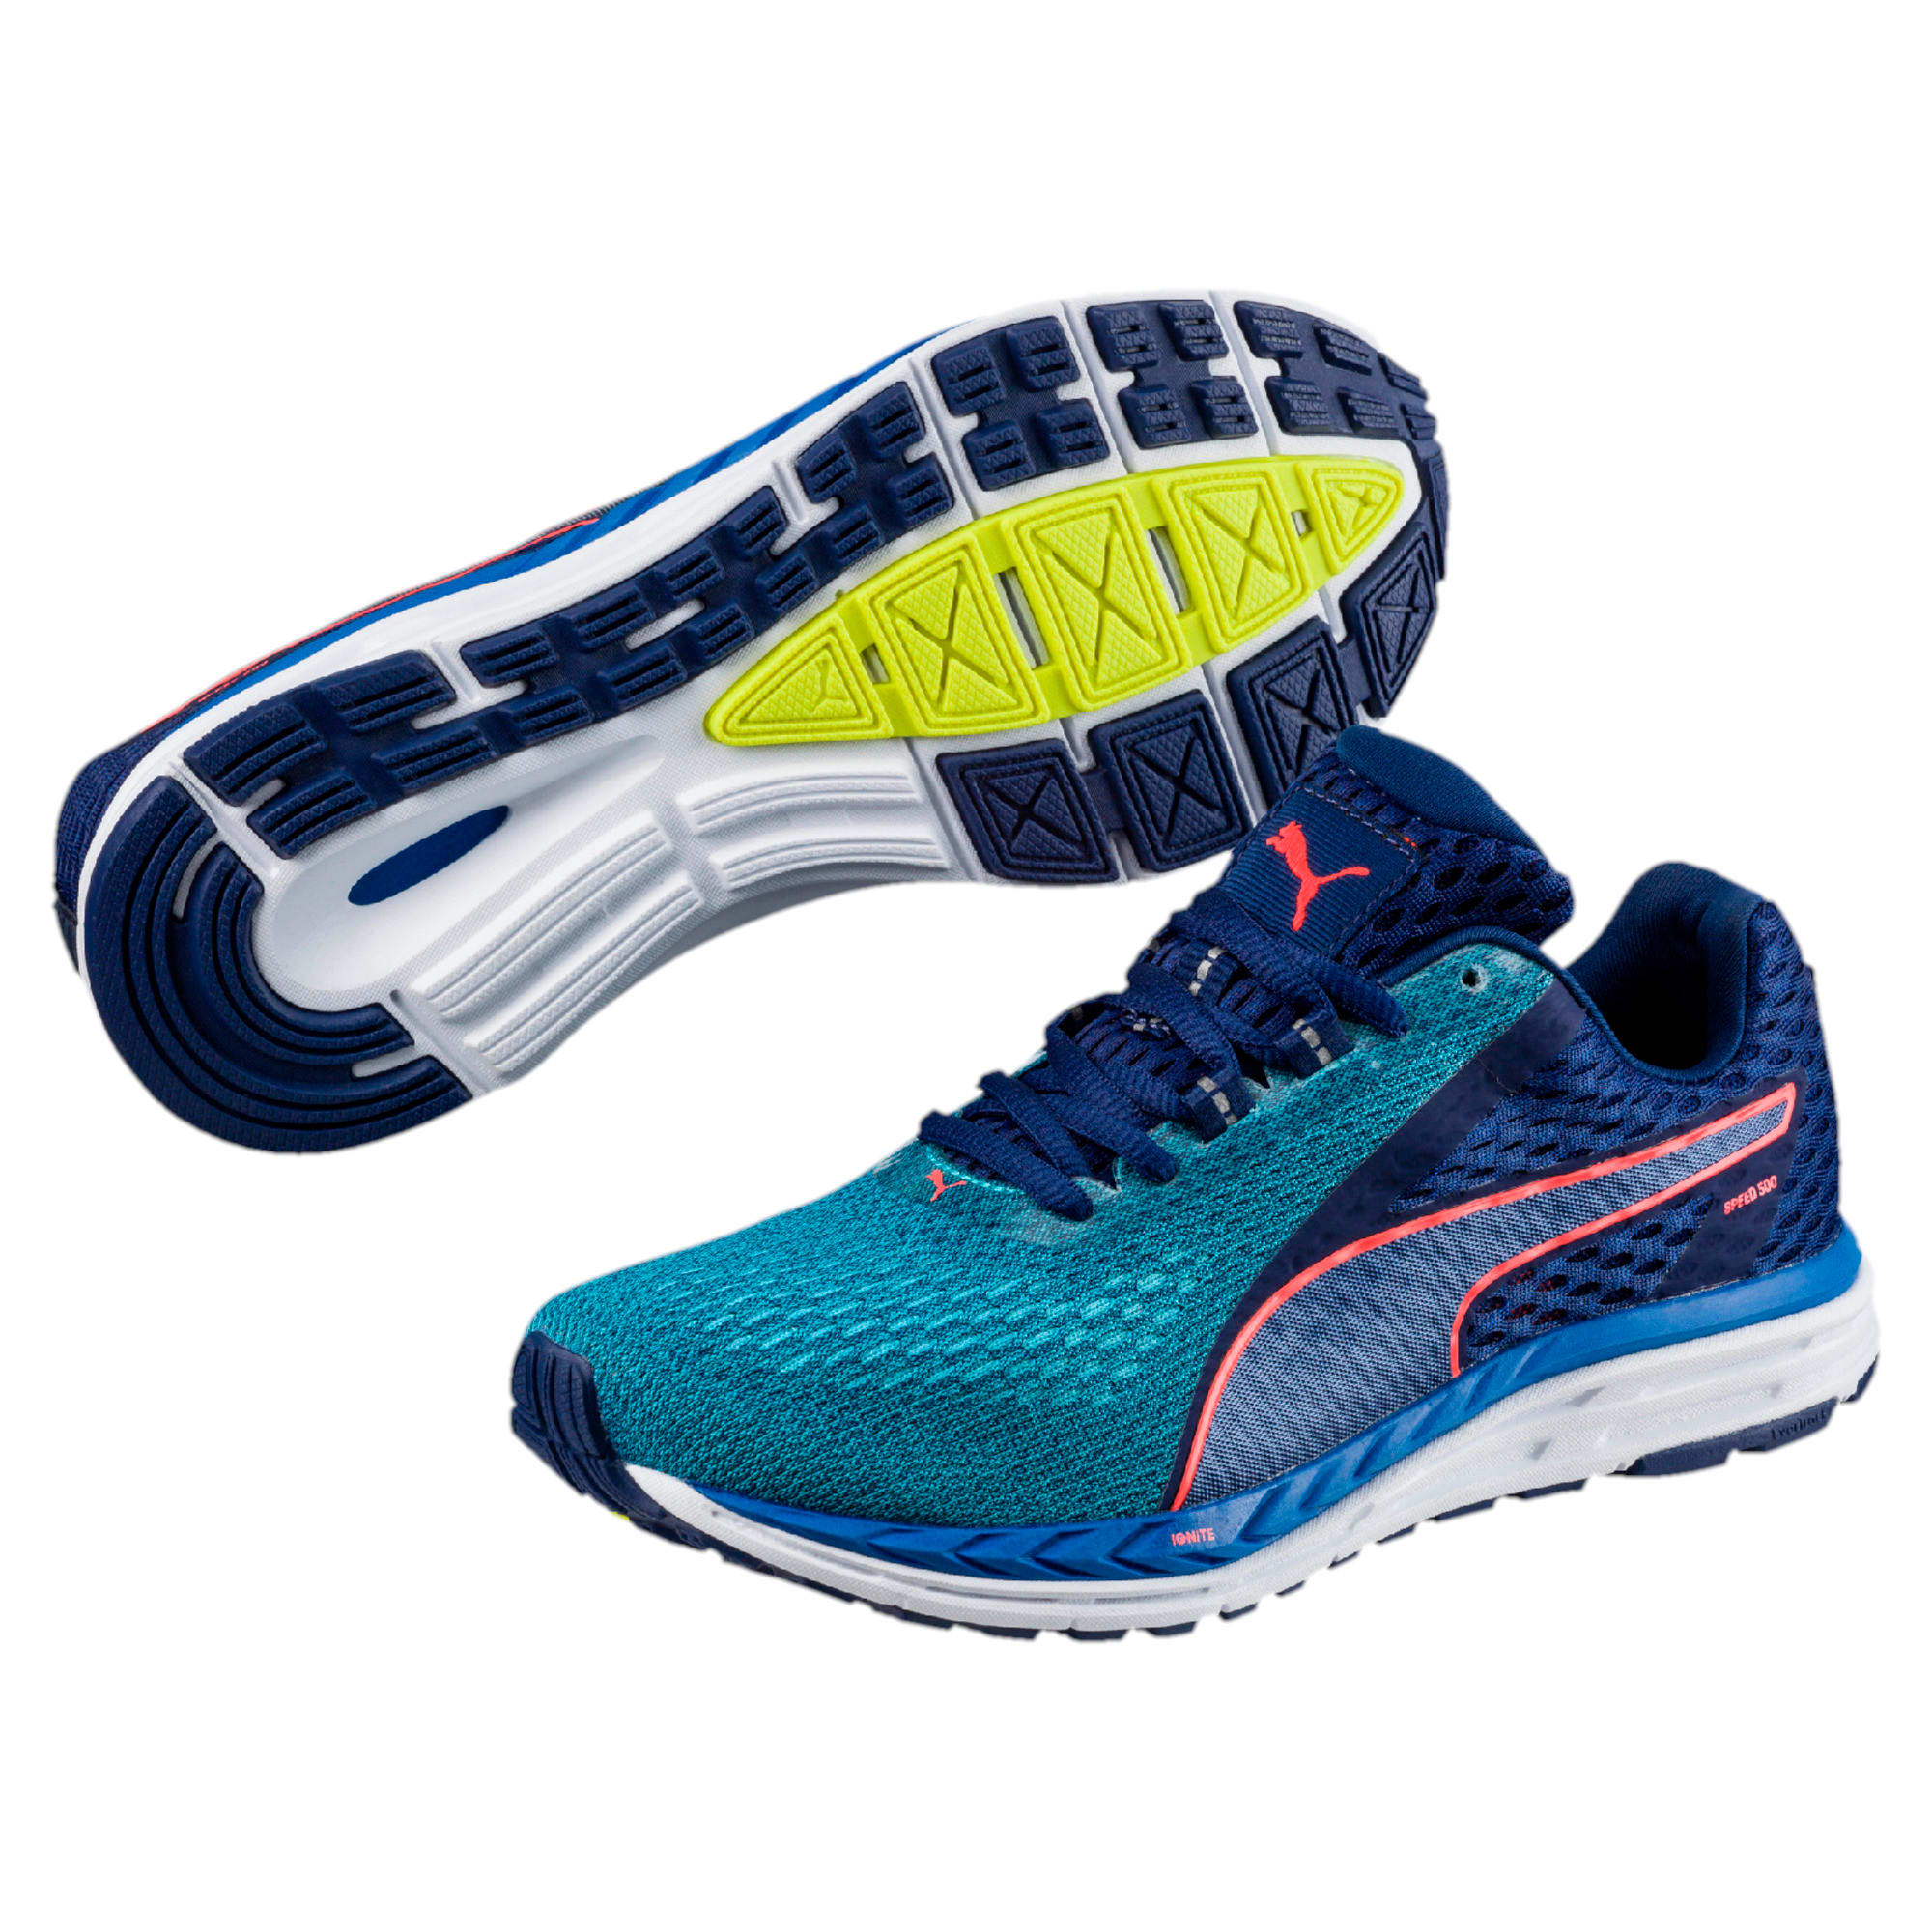 Thumbnail 6 of Speed 500 IGNITE 2 Kids' Running Shoes, Nrgy Turquoise-Blue Depths, medium-IND